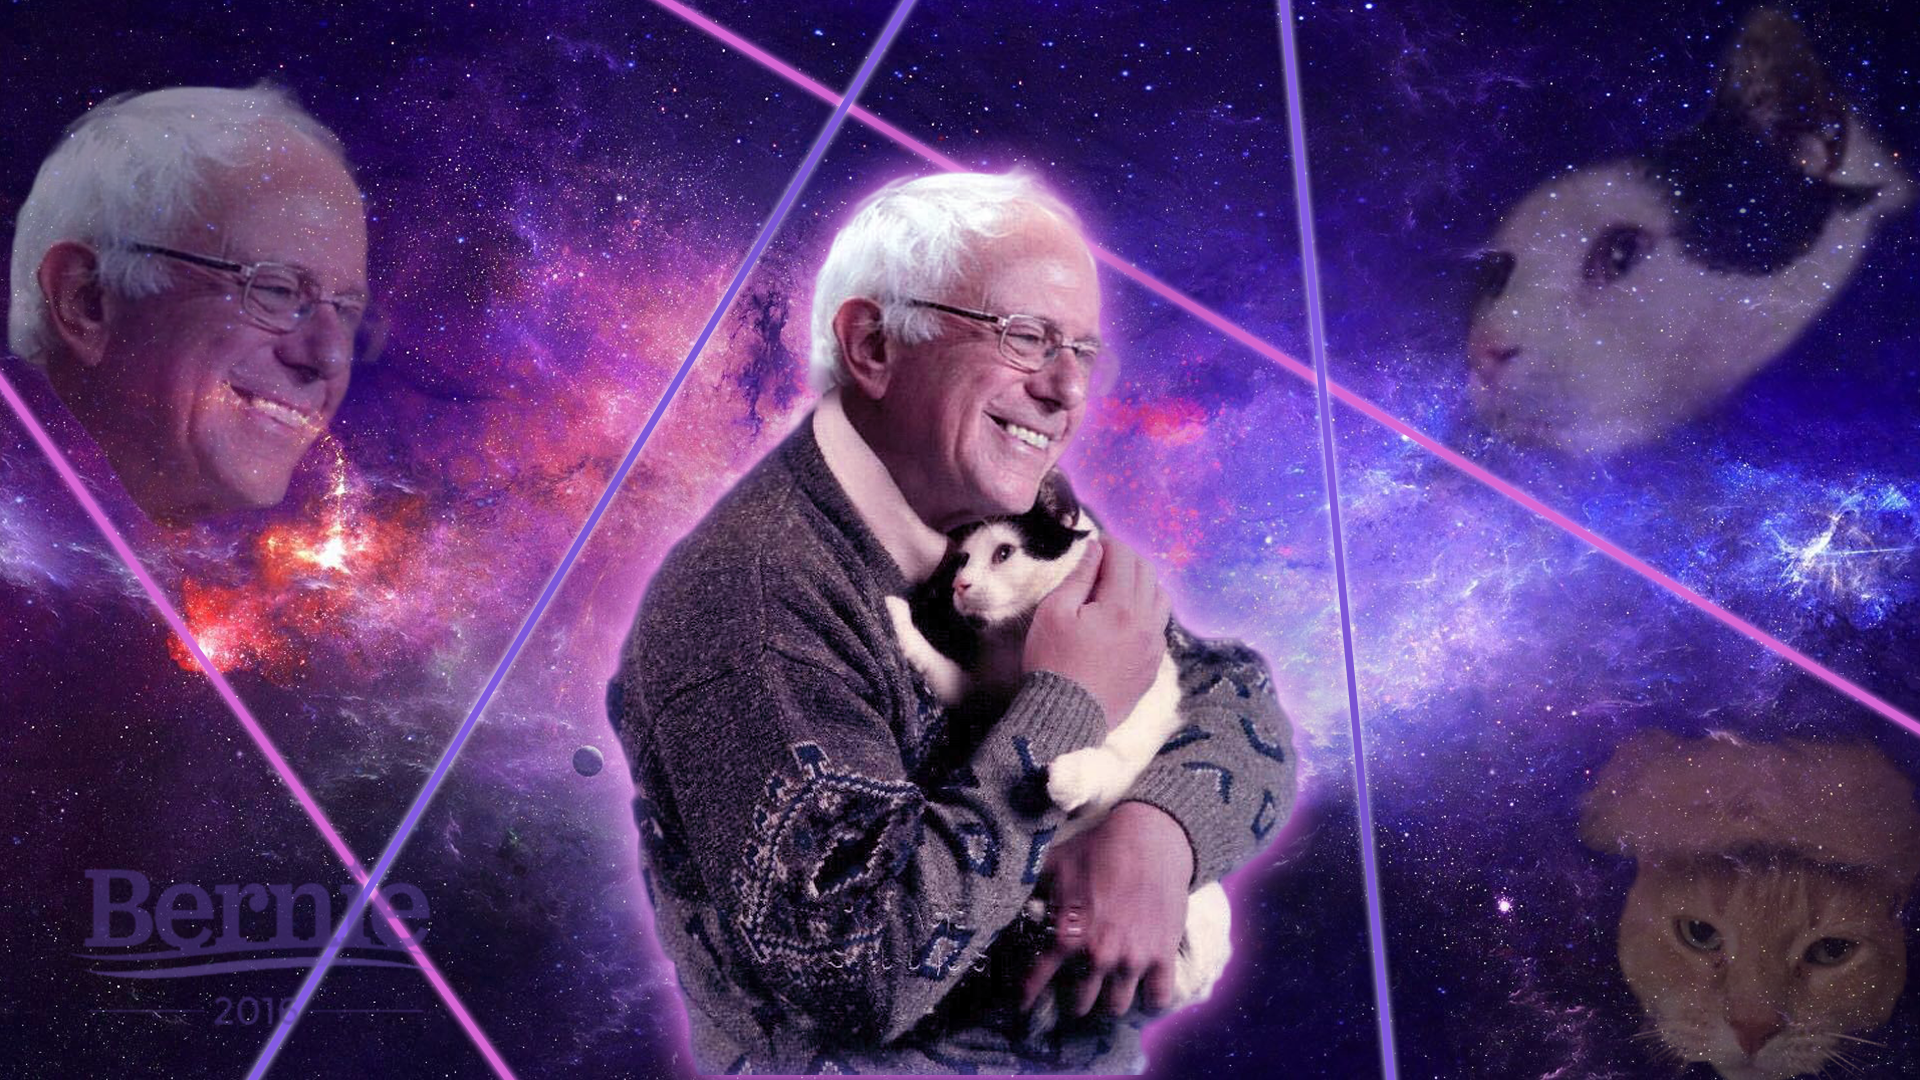 Bernie Sanders Rolls Out Daring New Plan Saying Cats Can Have A Little Salami Know Your Meme